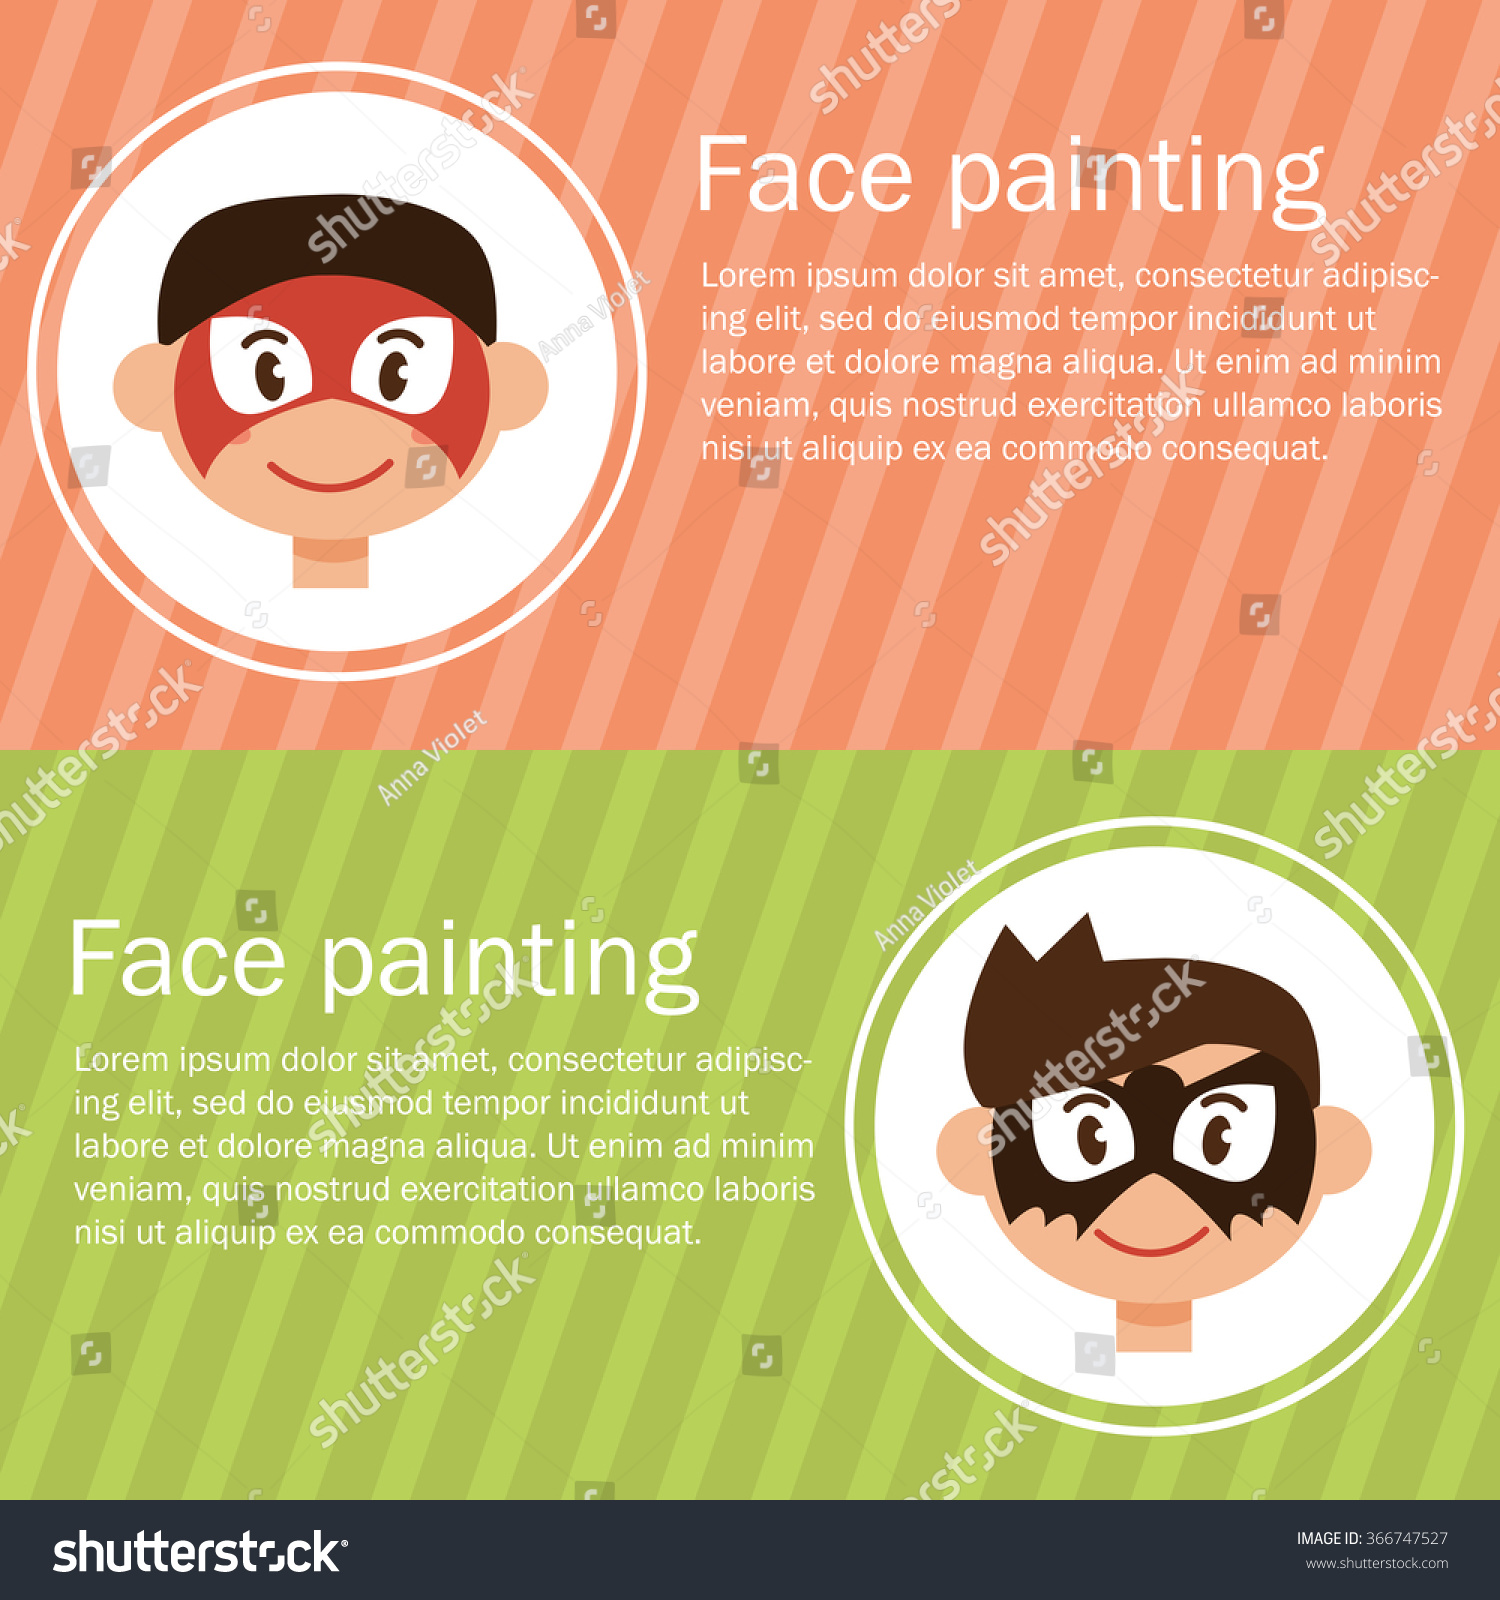 Face Painting Vector Isolated Illustration Cartoon Stock Vector